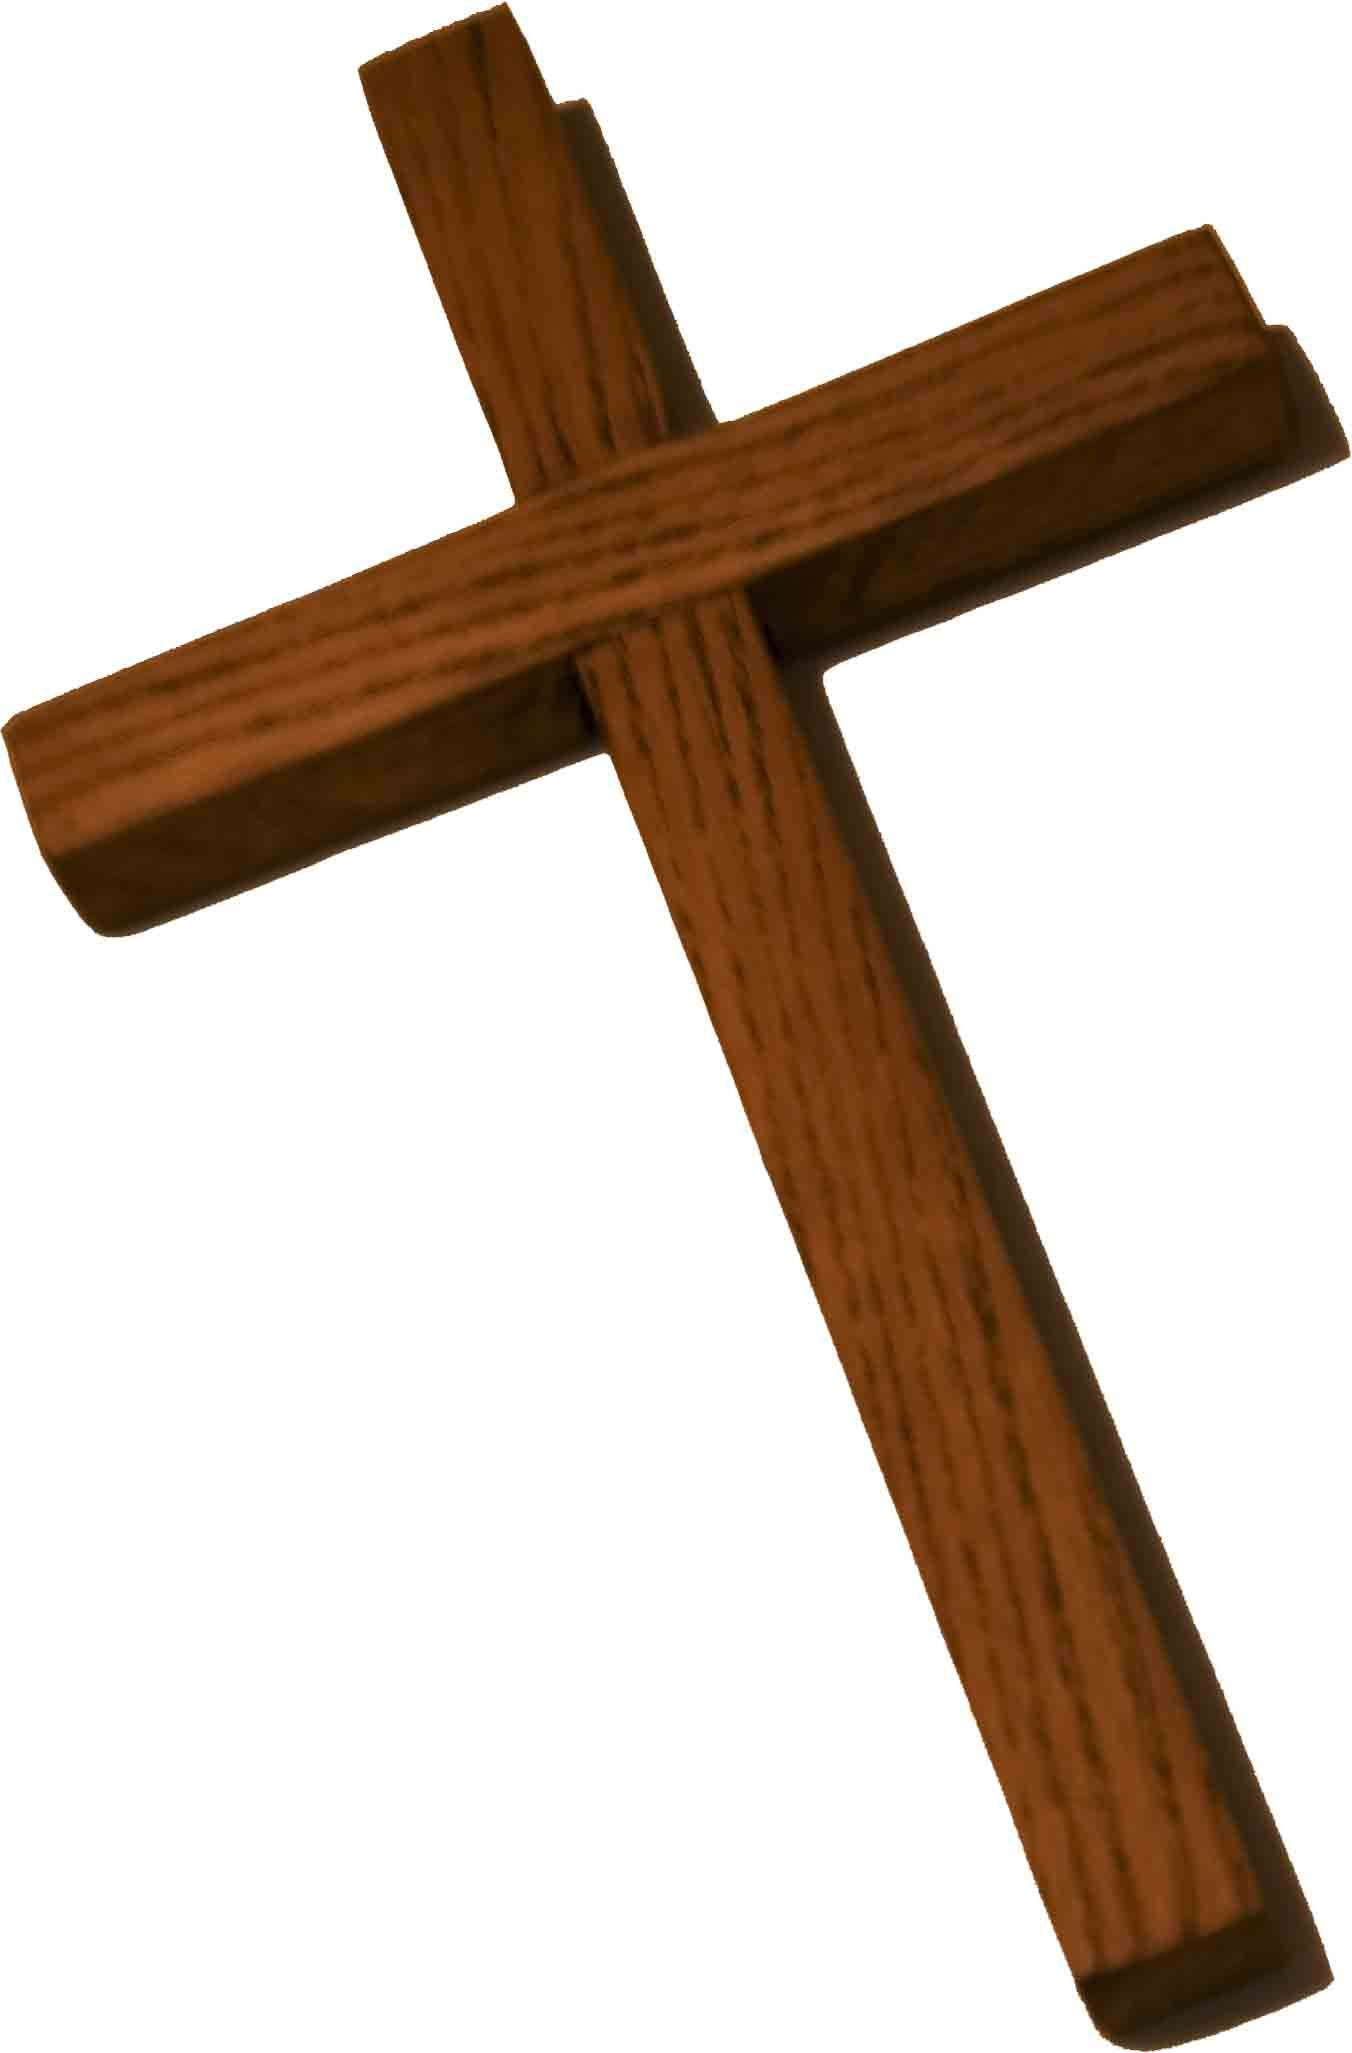 1352x2053 Wooden Cross Clip Art Clipart Panda Free Images Showy Transitionsfv